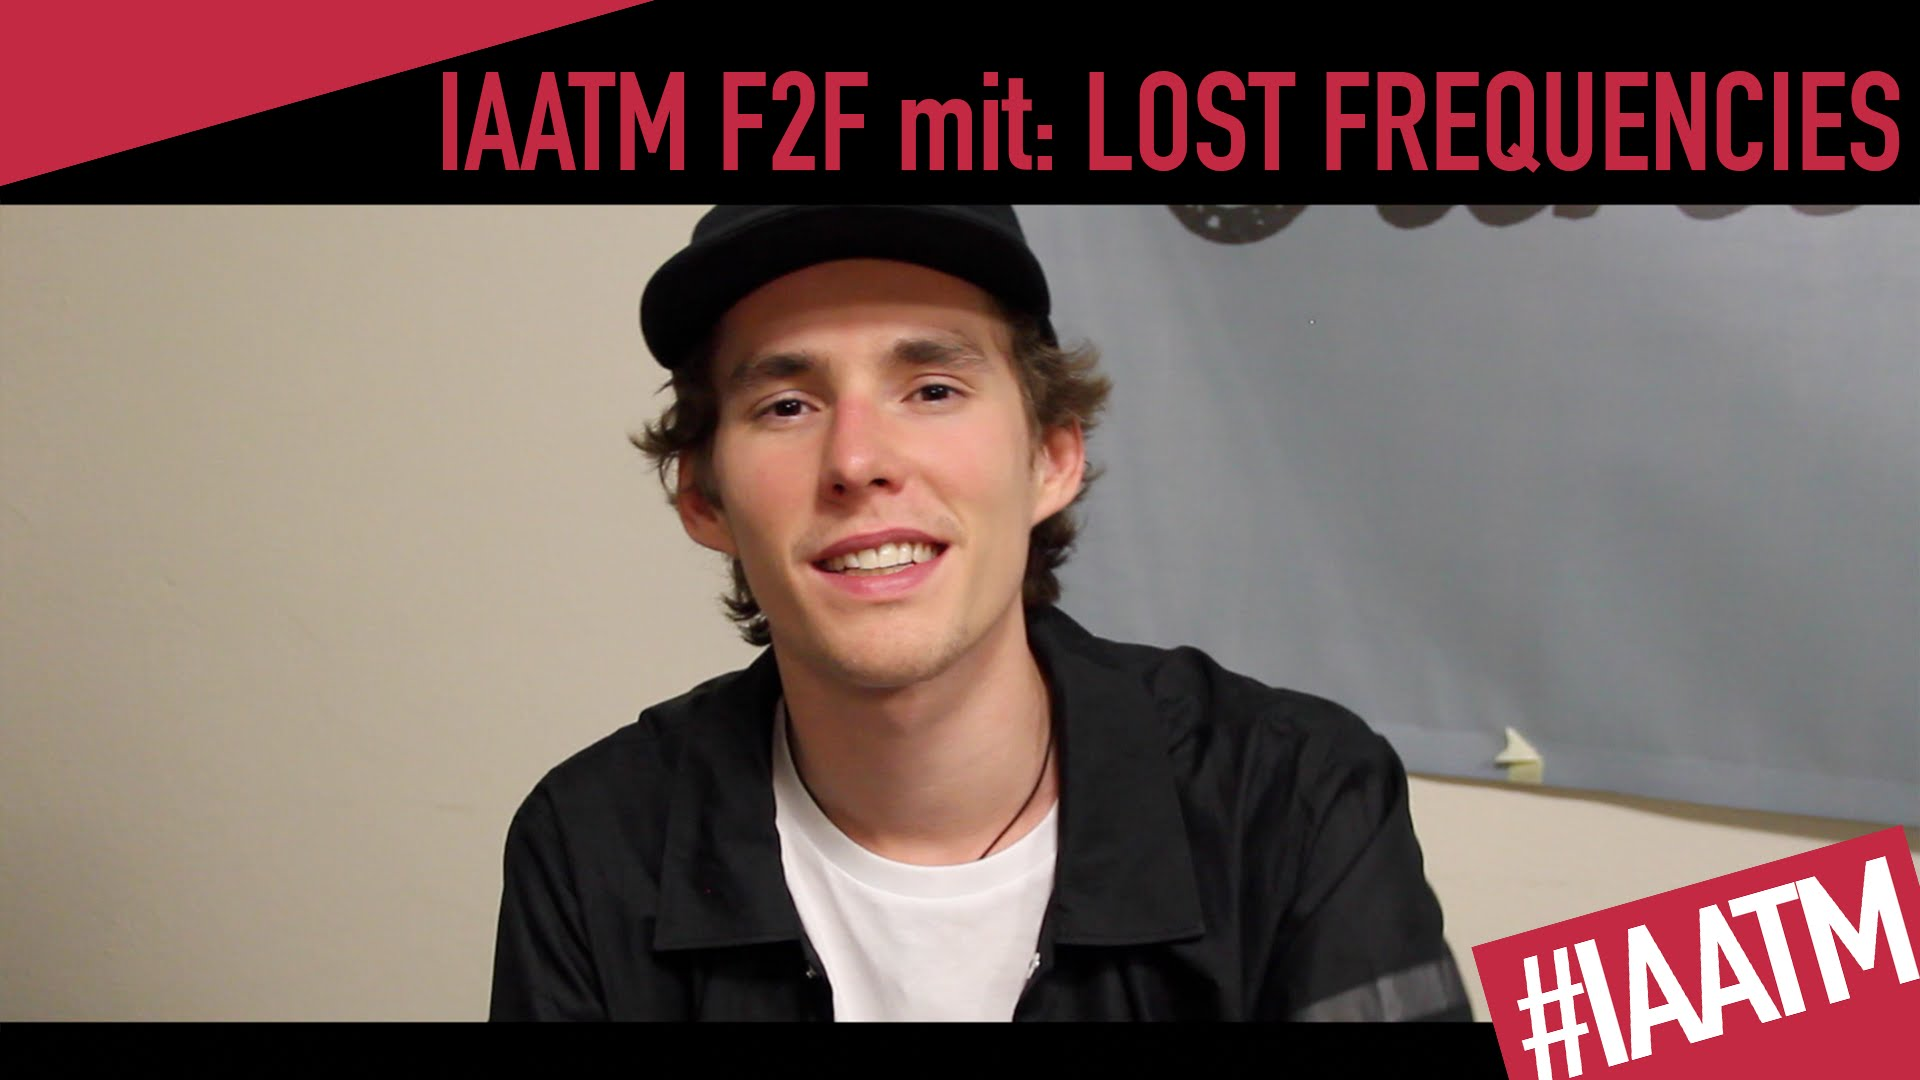 Lost Frequencies IAATM TV INTERVIEW